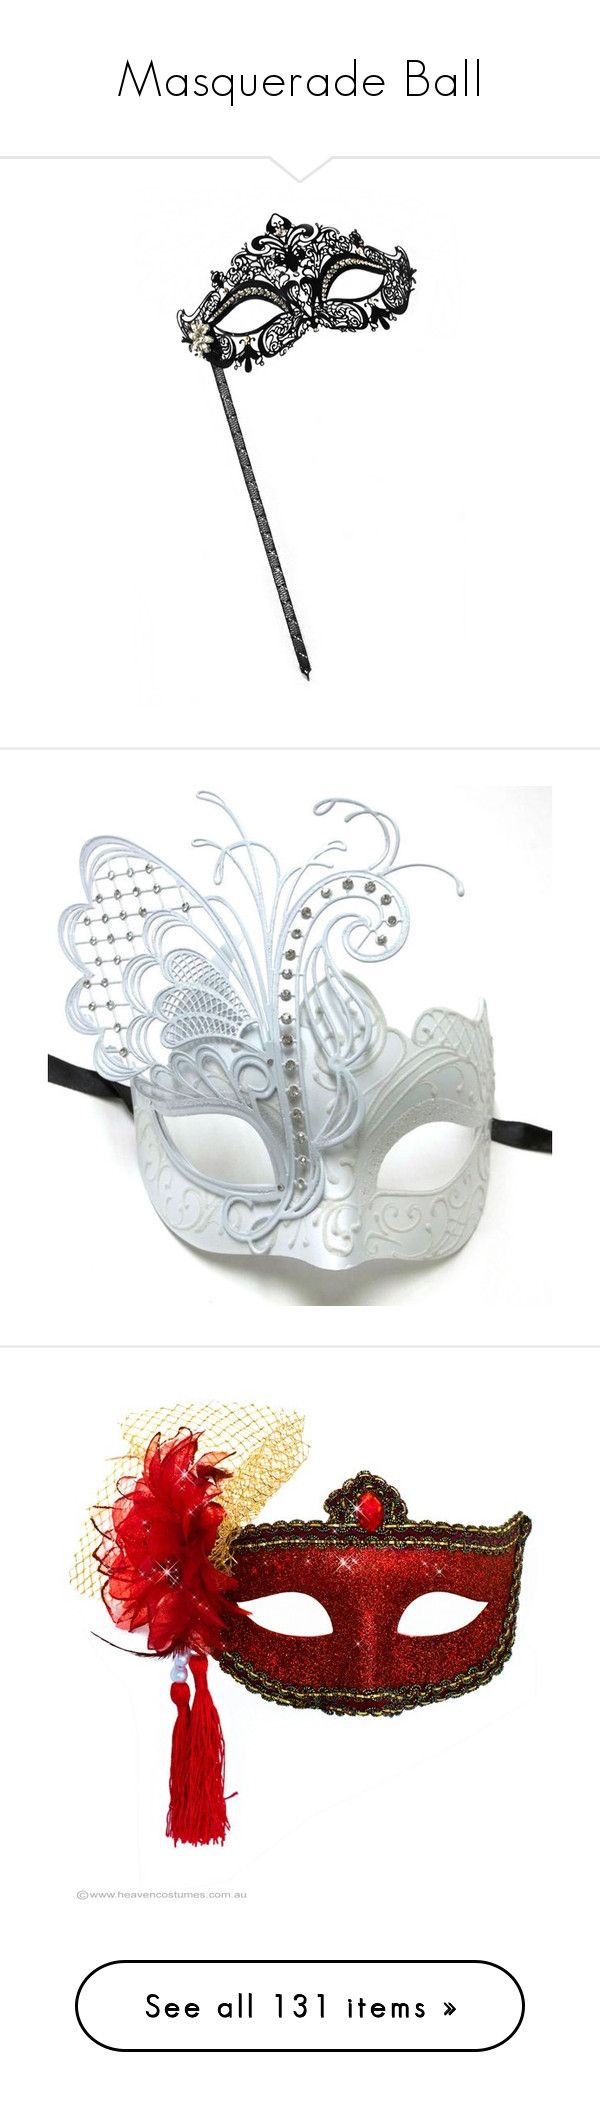 """""""Masquerade Ball"""" by sedf2 ❤ liked on Polyvore featuring mask, jewelry, bridal jewellery, monarch butterfly jewelry, iridescent crystal jewelry, filigree jewelry, masquerade jewelry, costumes, masks and accessories"""